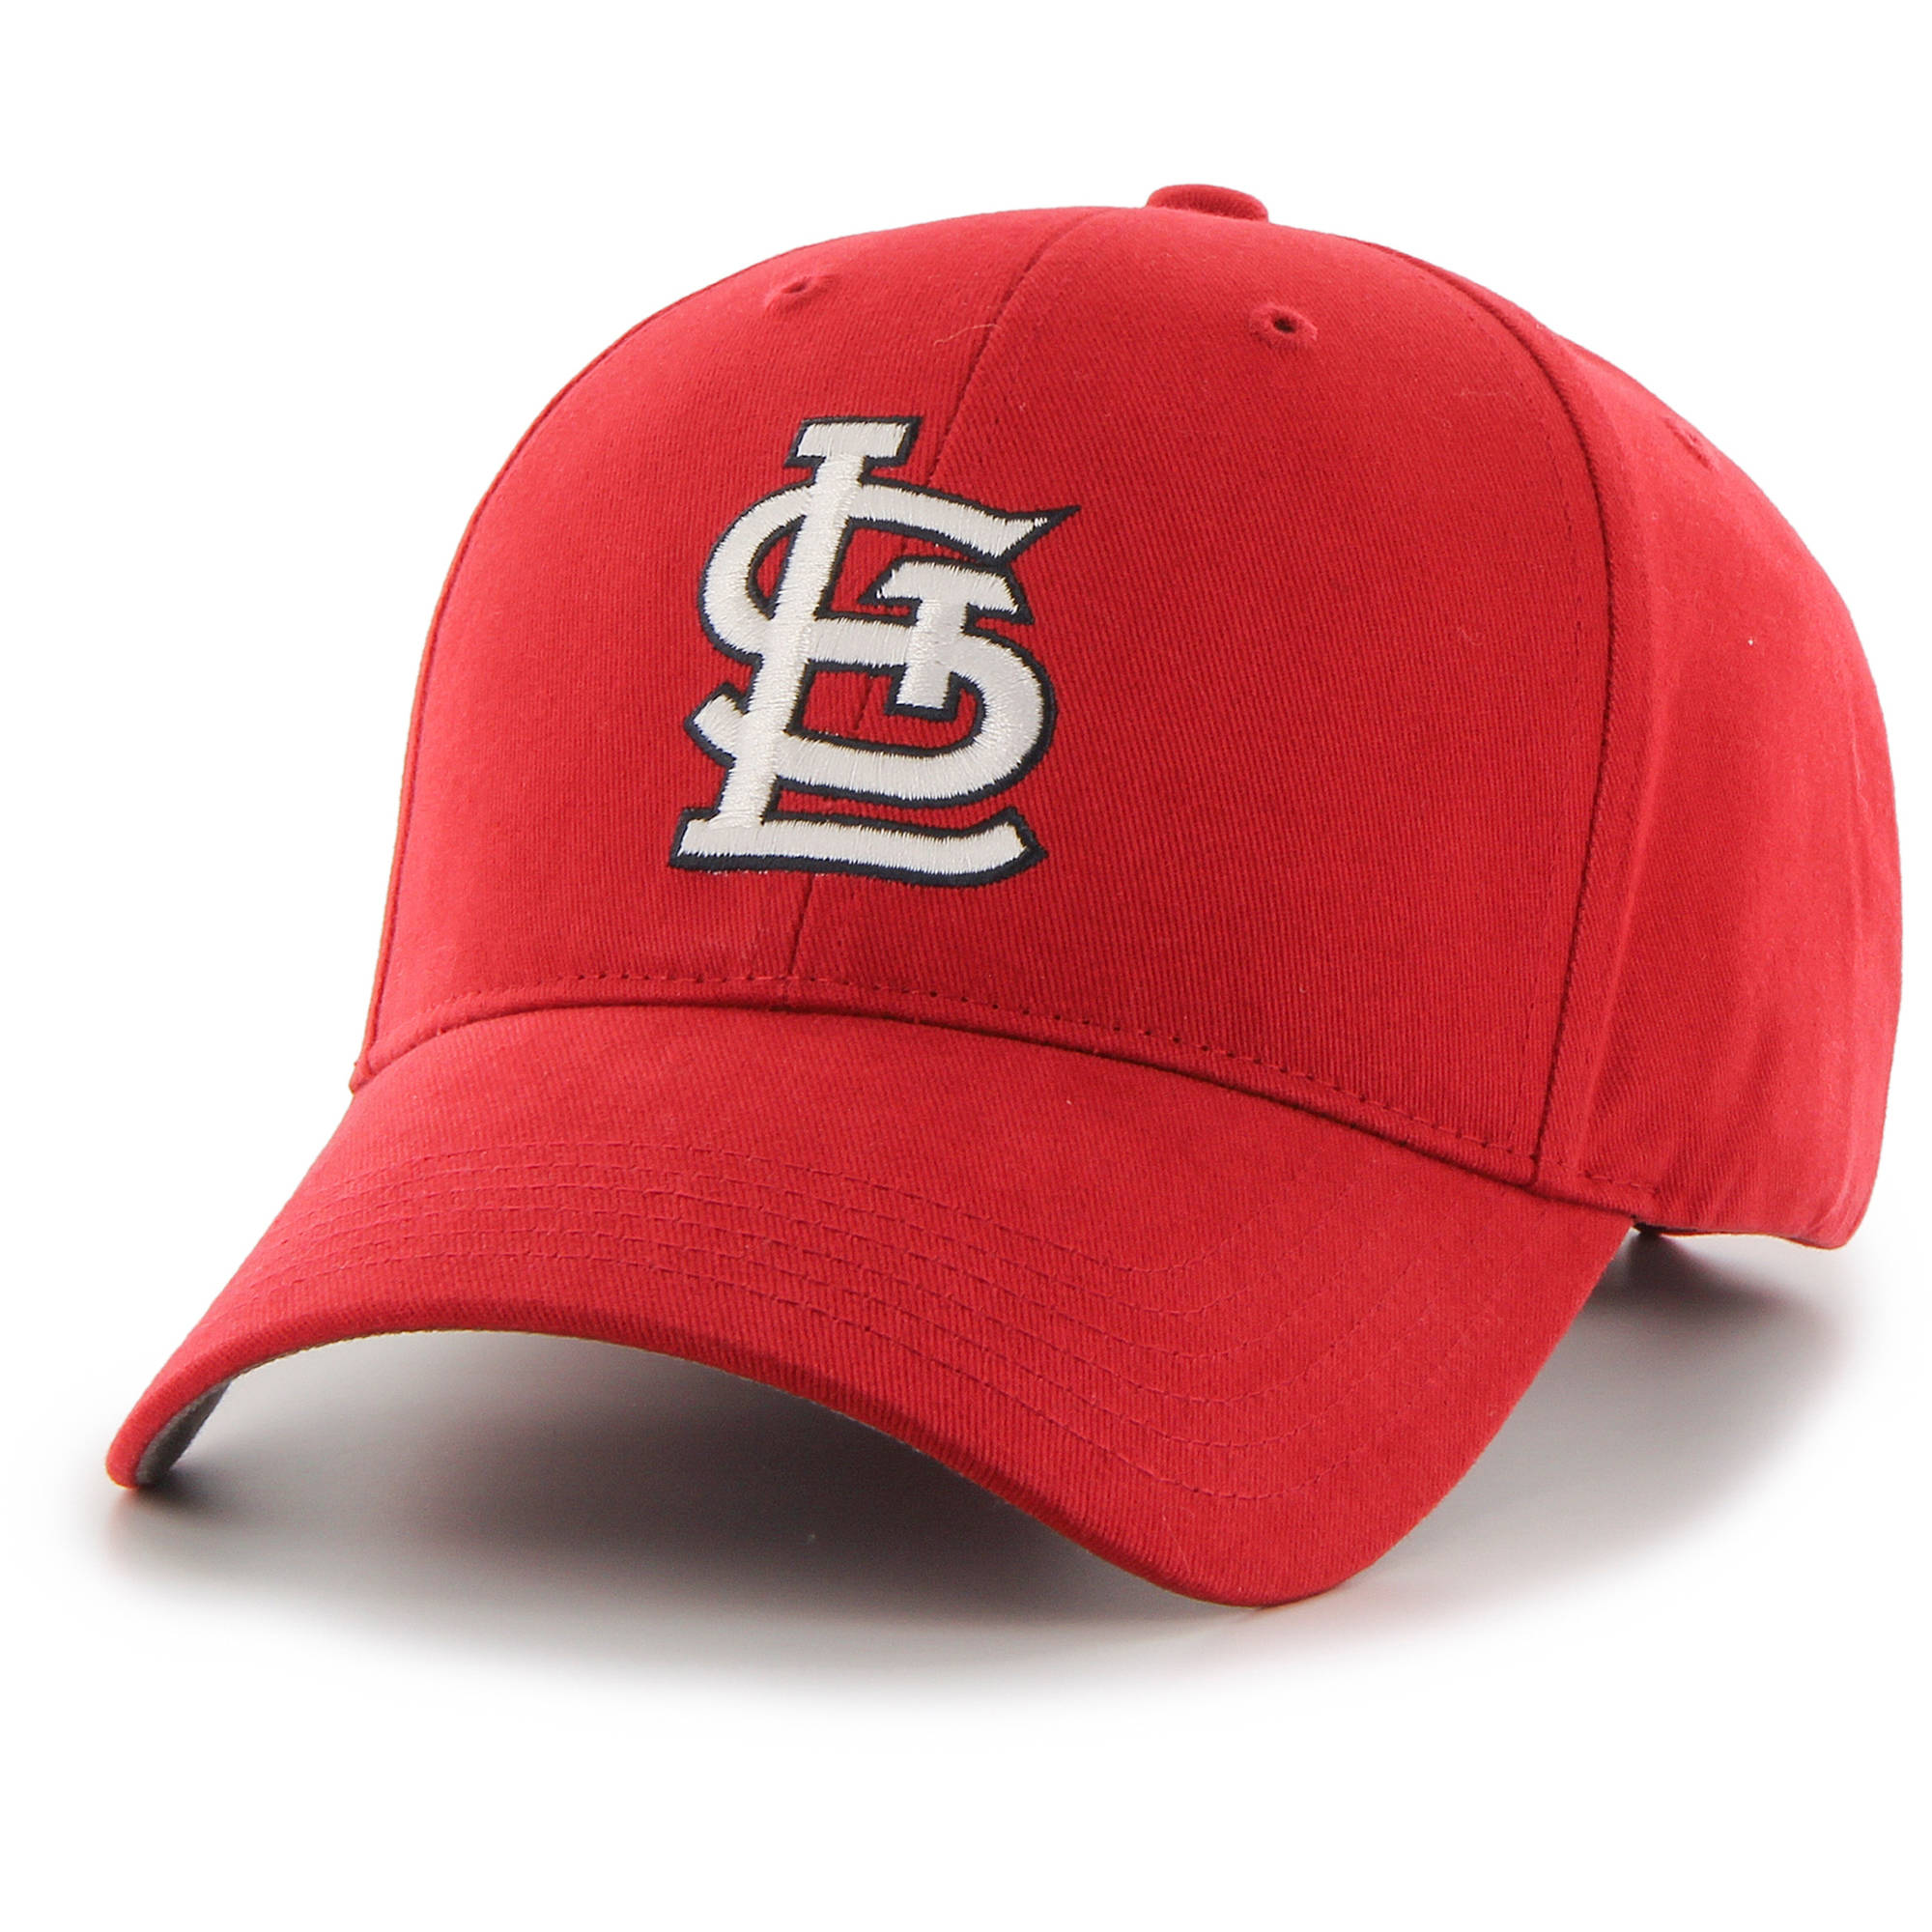 MLB St. Louis Cardinals Basic Cap / Hat by Fan Favorite